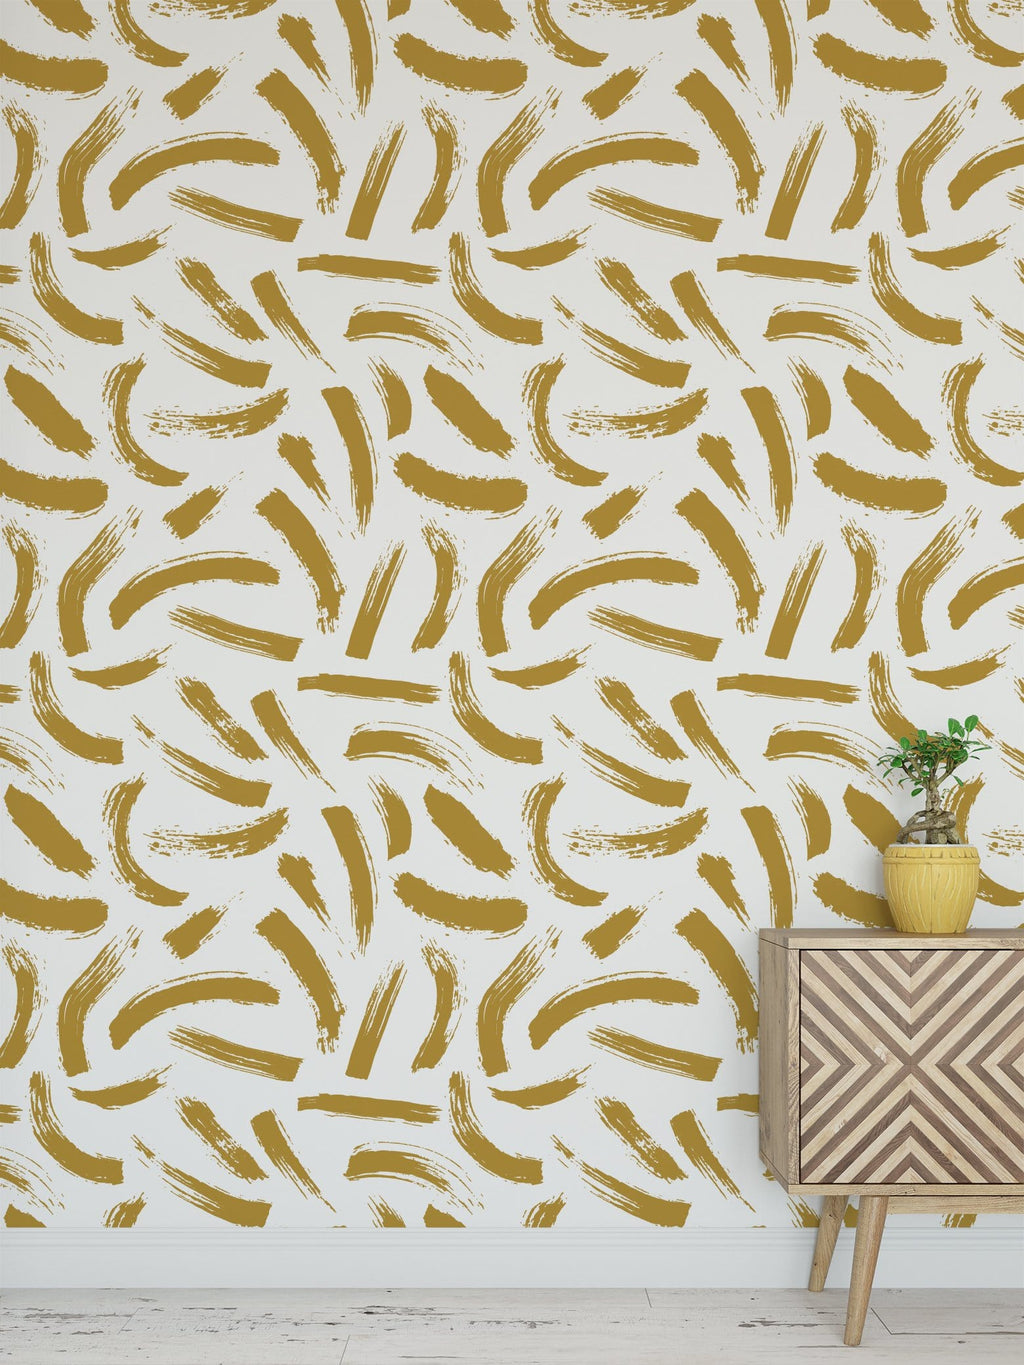 ochre yellow matisse brush strokes abstract peel and stick wallpaper